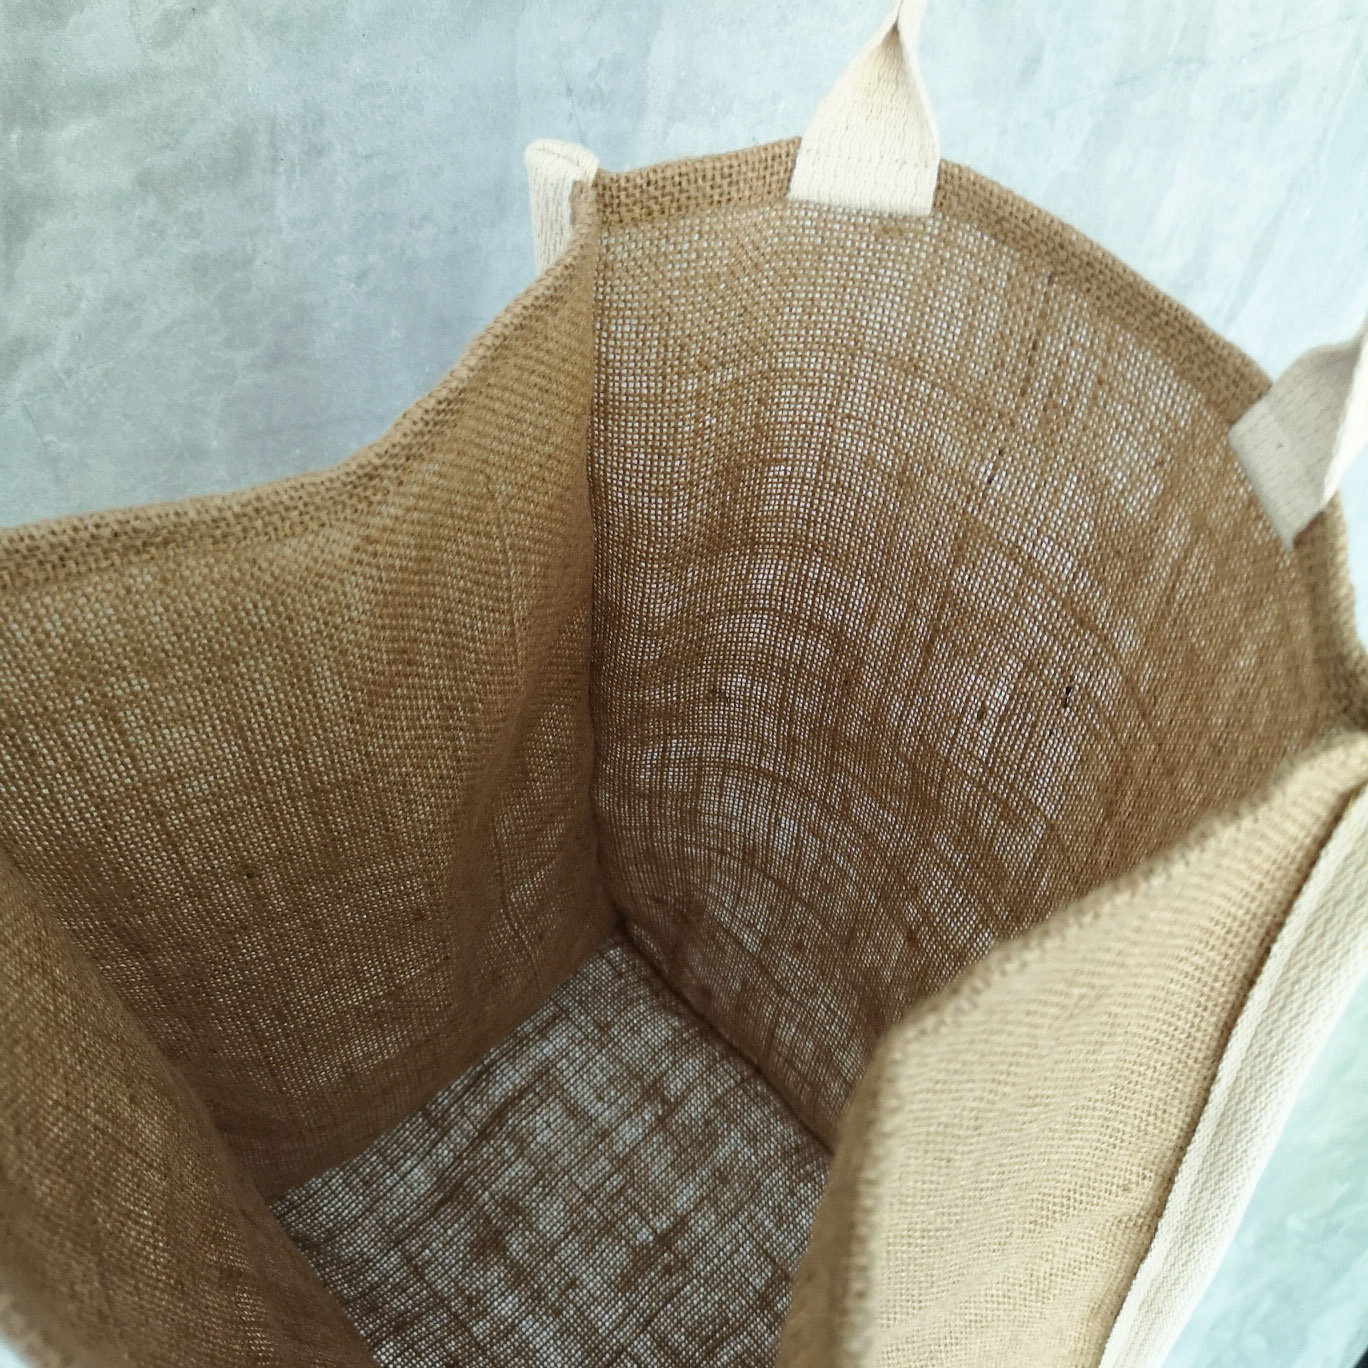 Interior of our jute shopping bag